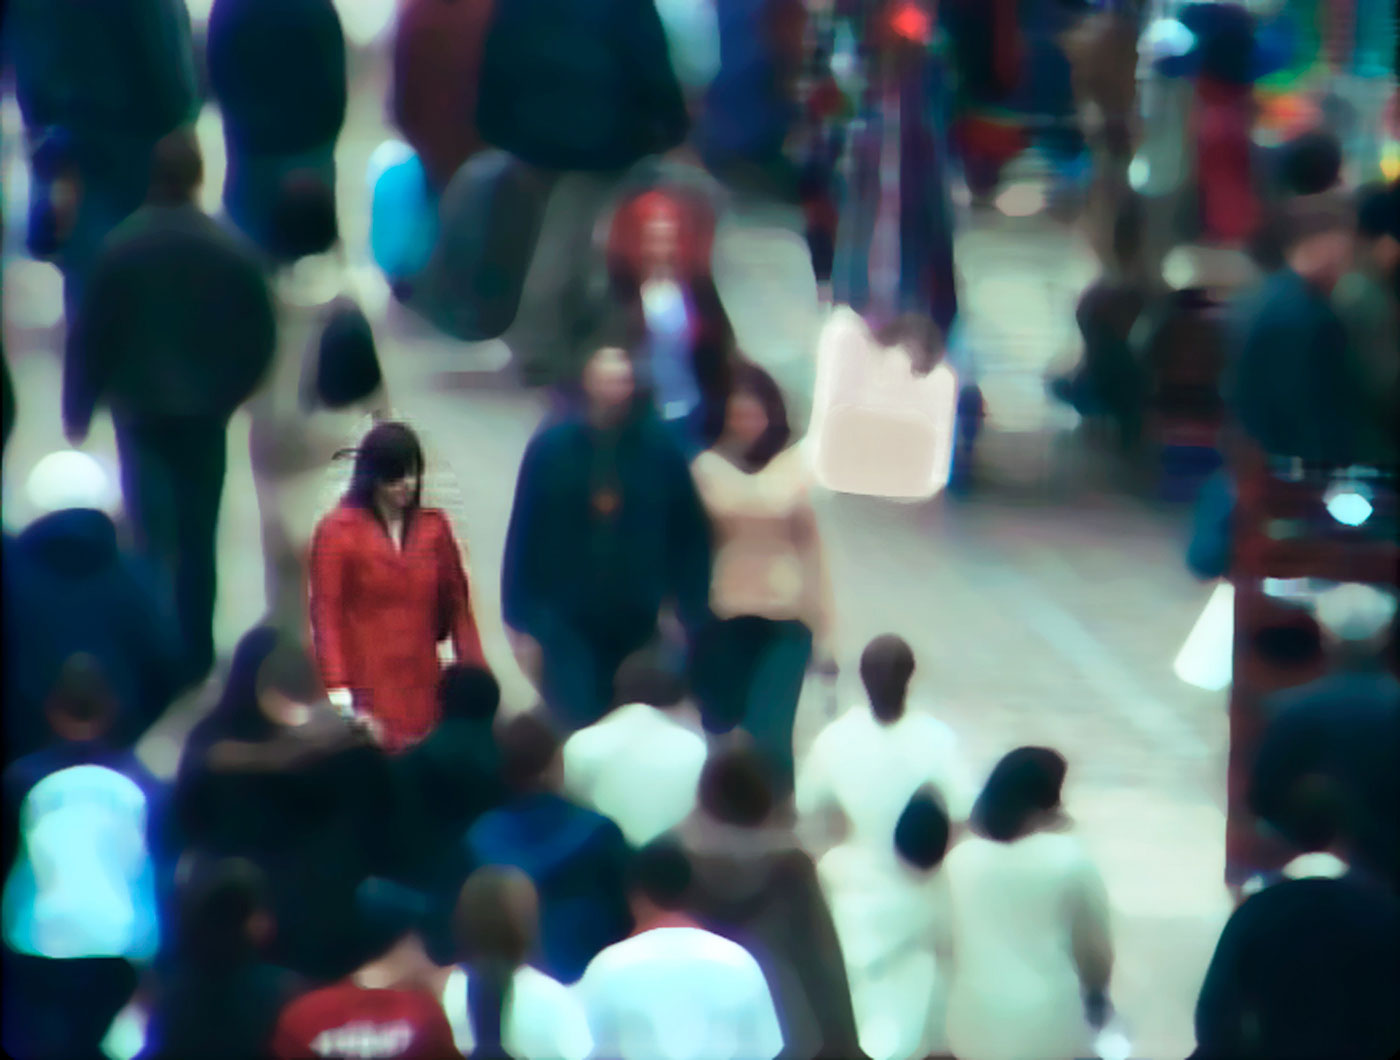 A dark-haired woman in a red coat stands in a crowded street. Only her image is crisp, the other figures have been blurred.